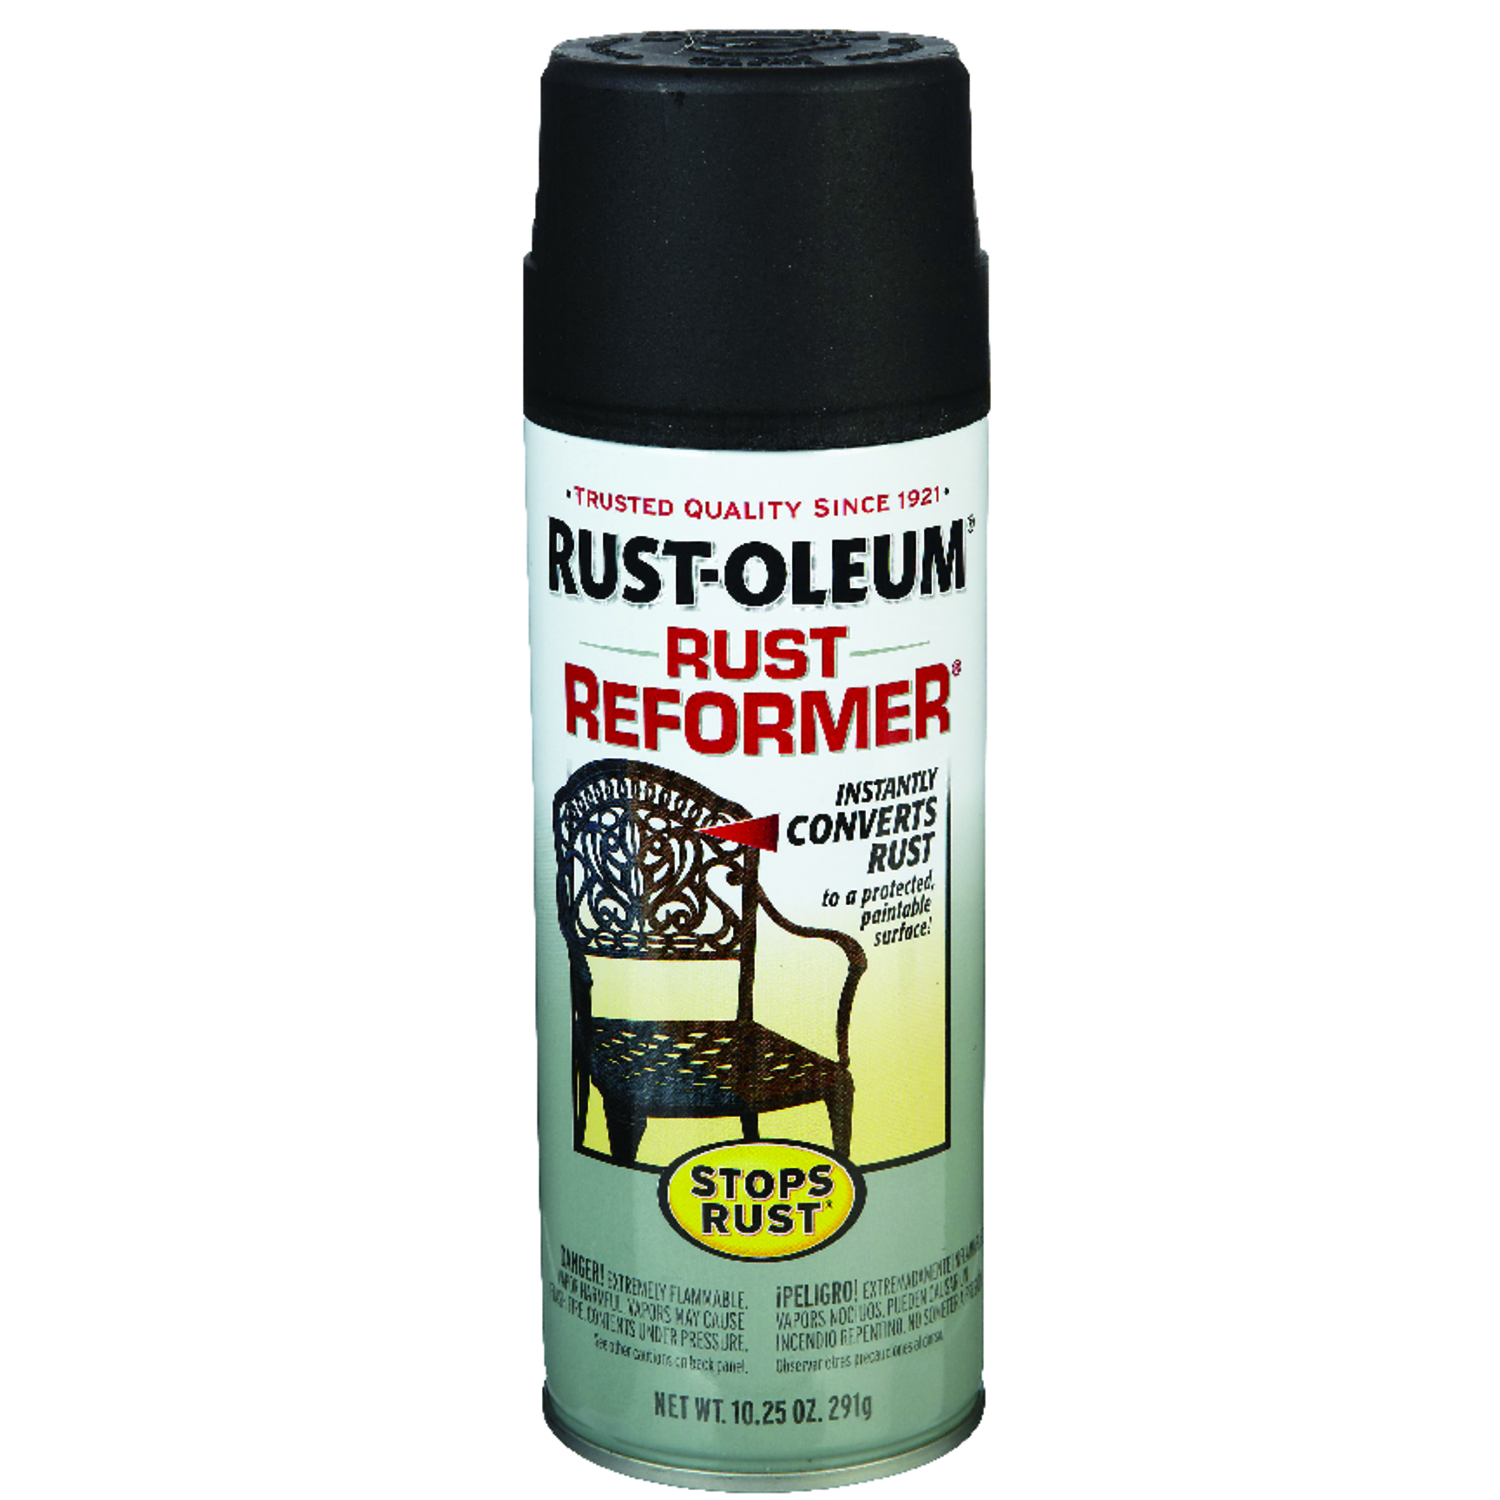 Rust-Oleum  Stops Rust  Indoor and Outdoor  Black  Interior/Exterior  Protective Paint  10.25 oz.